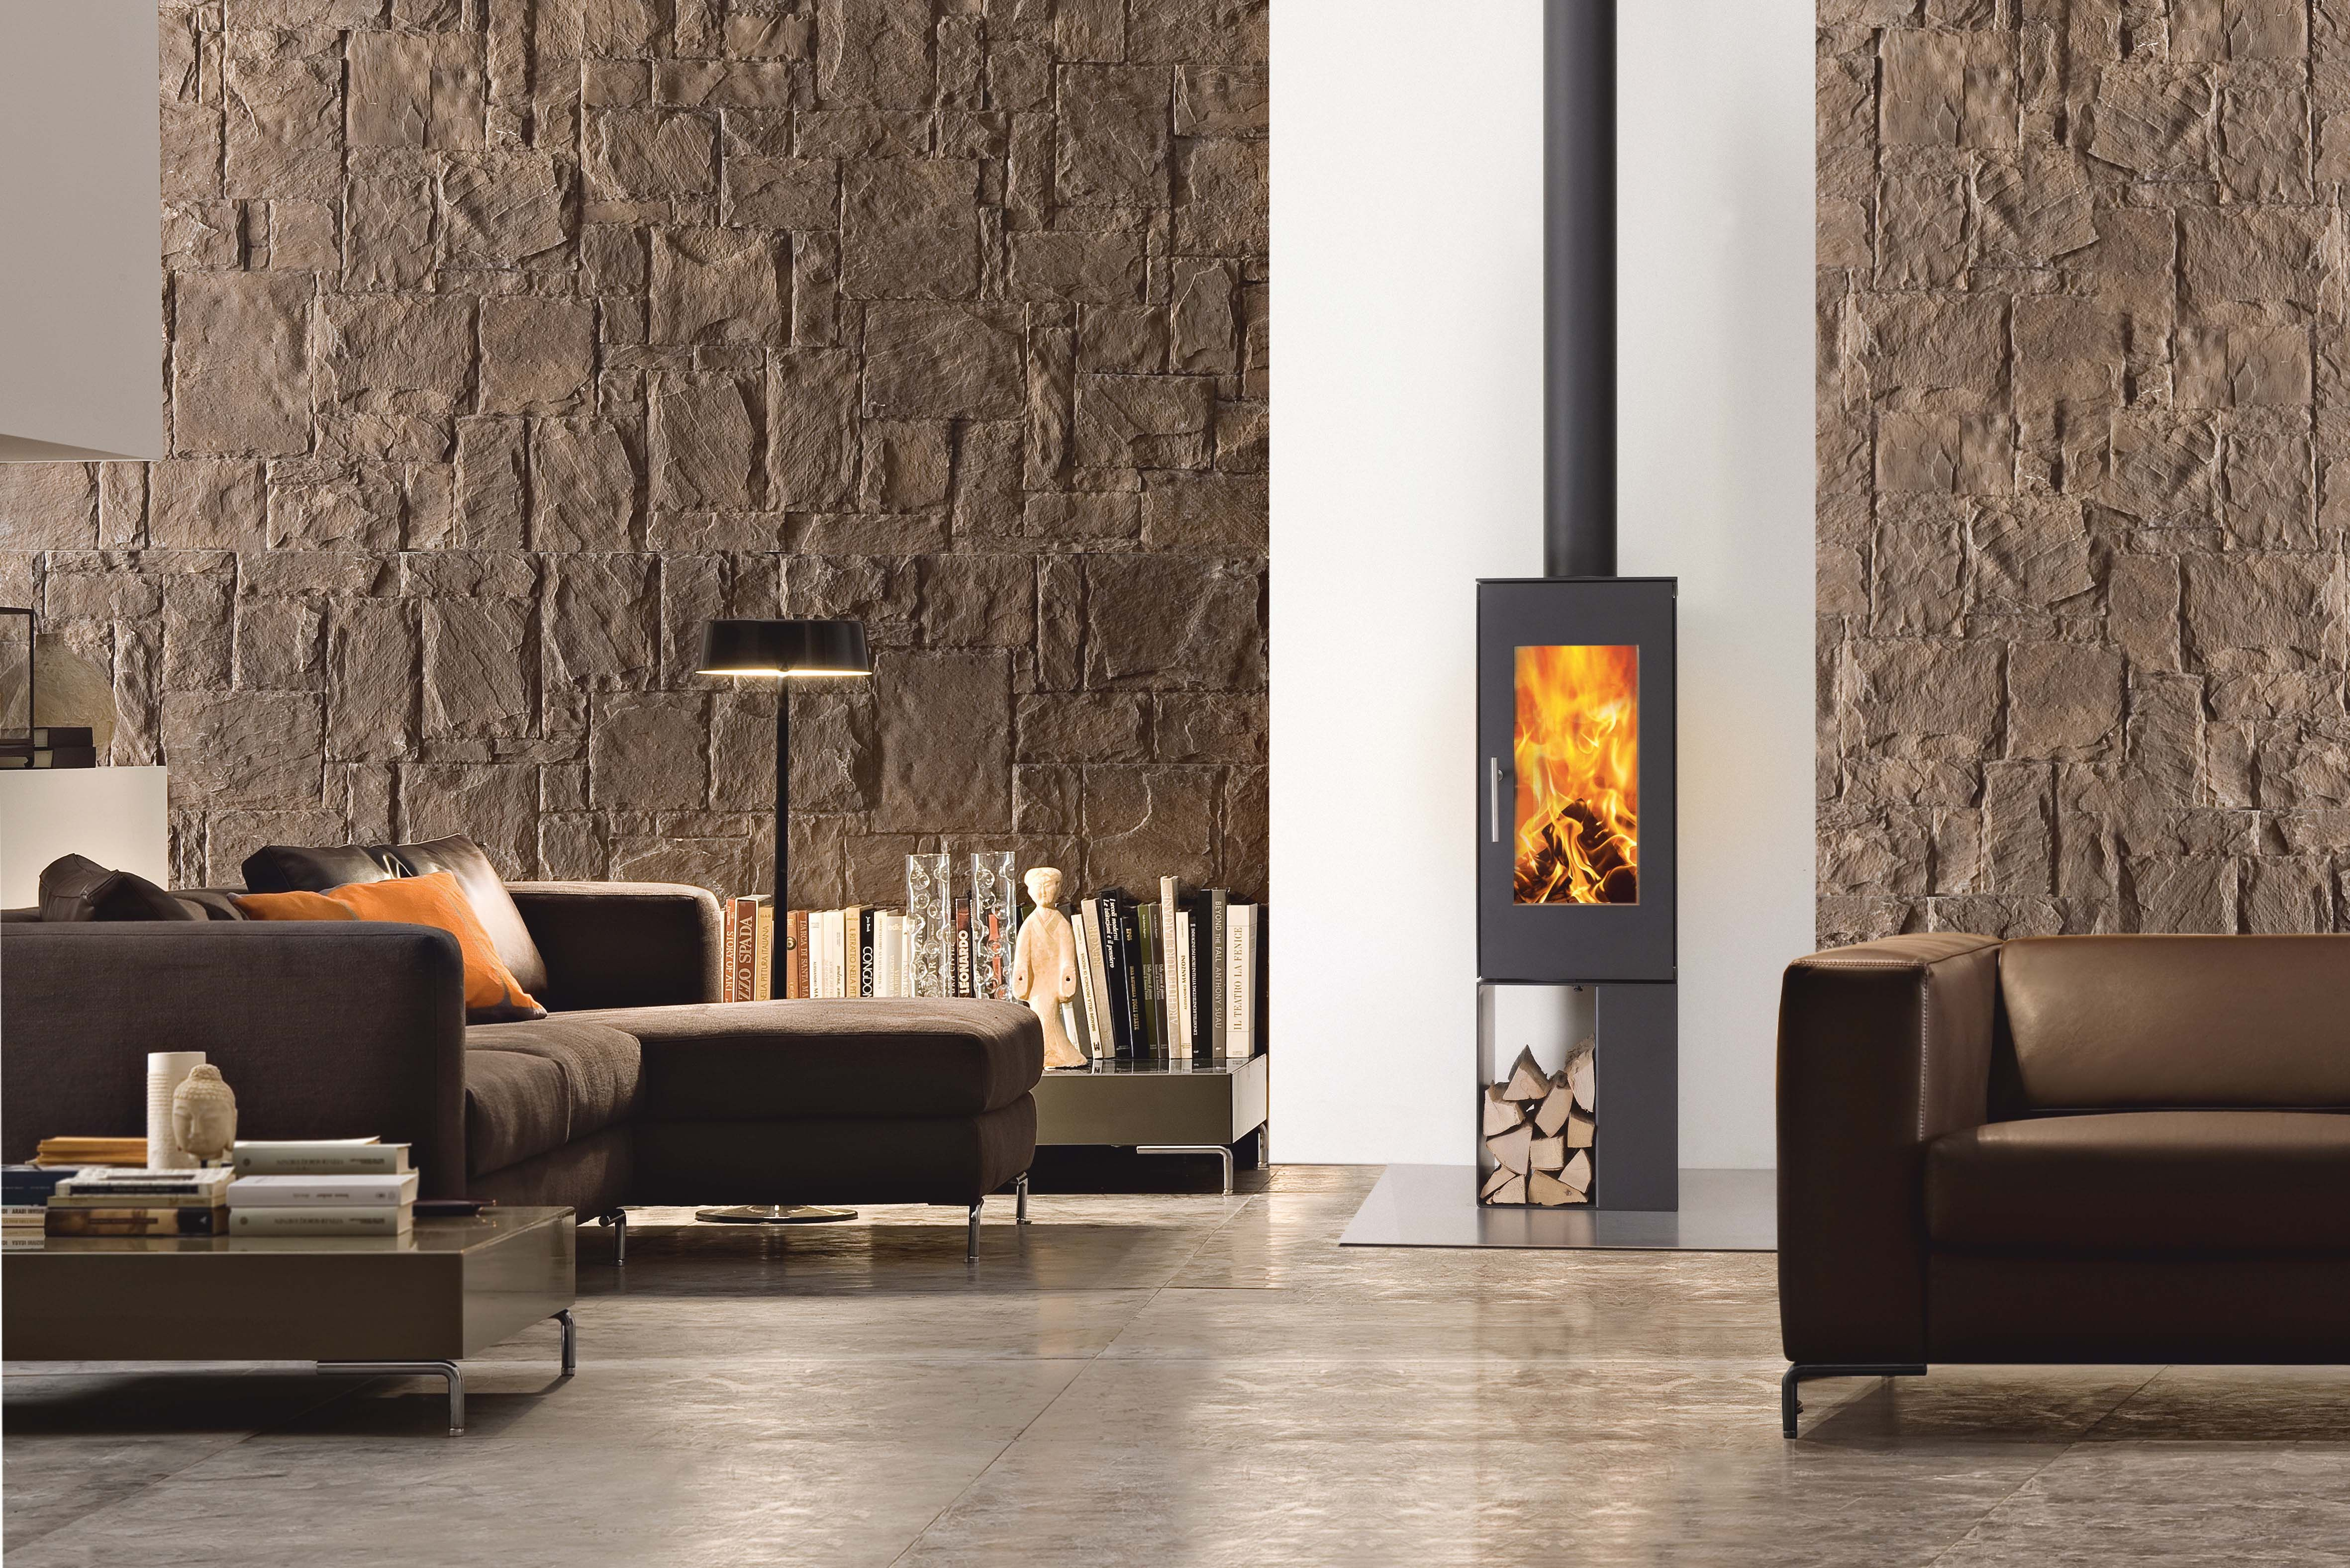 Explore Wood Fireplace, Modern Fireplaces, and more!